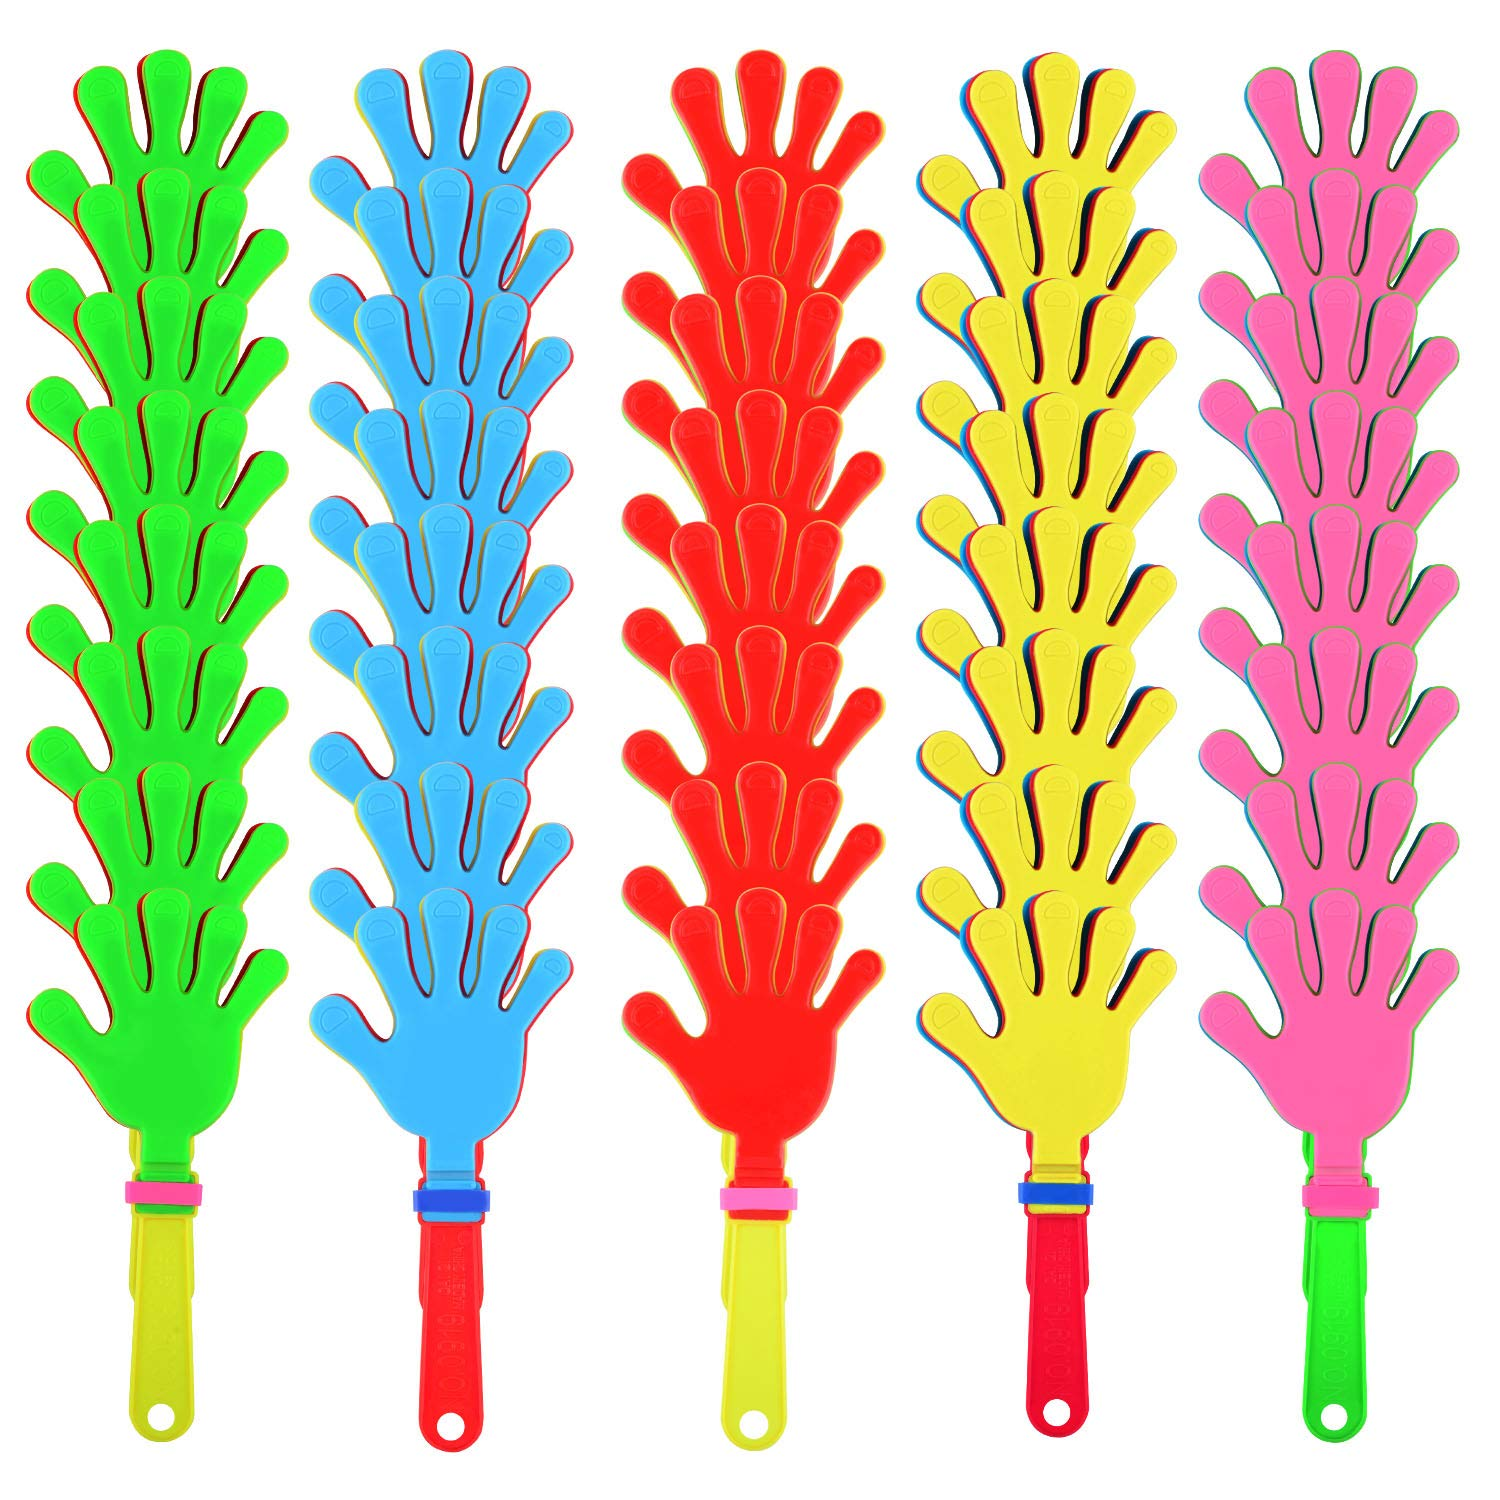 Sunshane 40 Pieces Plastic Hand Clappers Noise Makers Noisemaker Game Accessories for Fiesta Party Birthday Favors and Supplies, 7.5 Inch